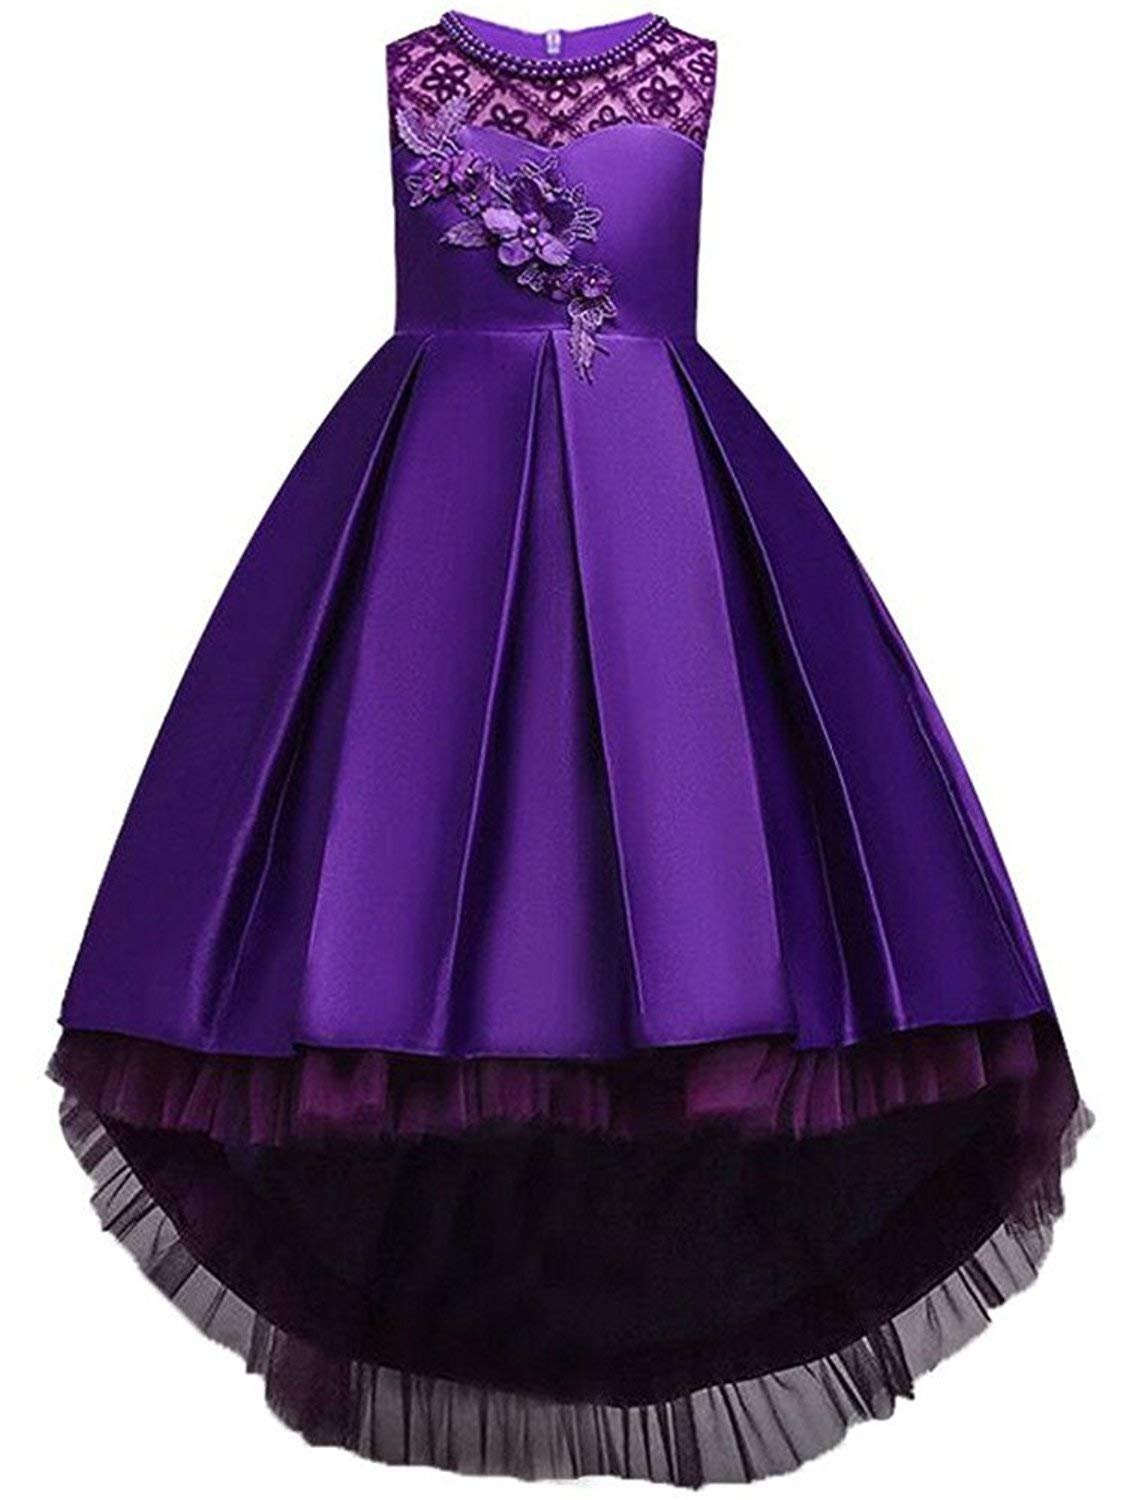 8191889133c3 Formal Dresses for Little Girls 5 Years Old Ball Gown Sleeveless Floral  Girl Dress Size 6 Dark Purple Graduation Holiday Dress for Kids Knee Length  Tutu ...